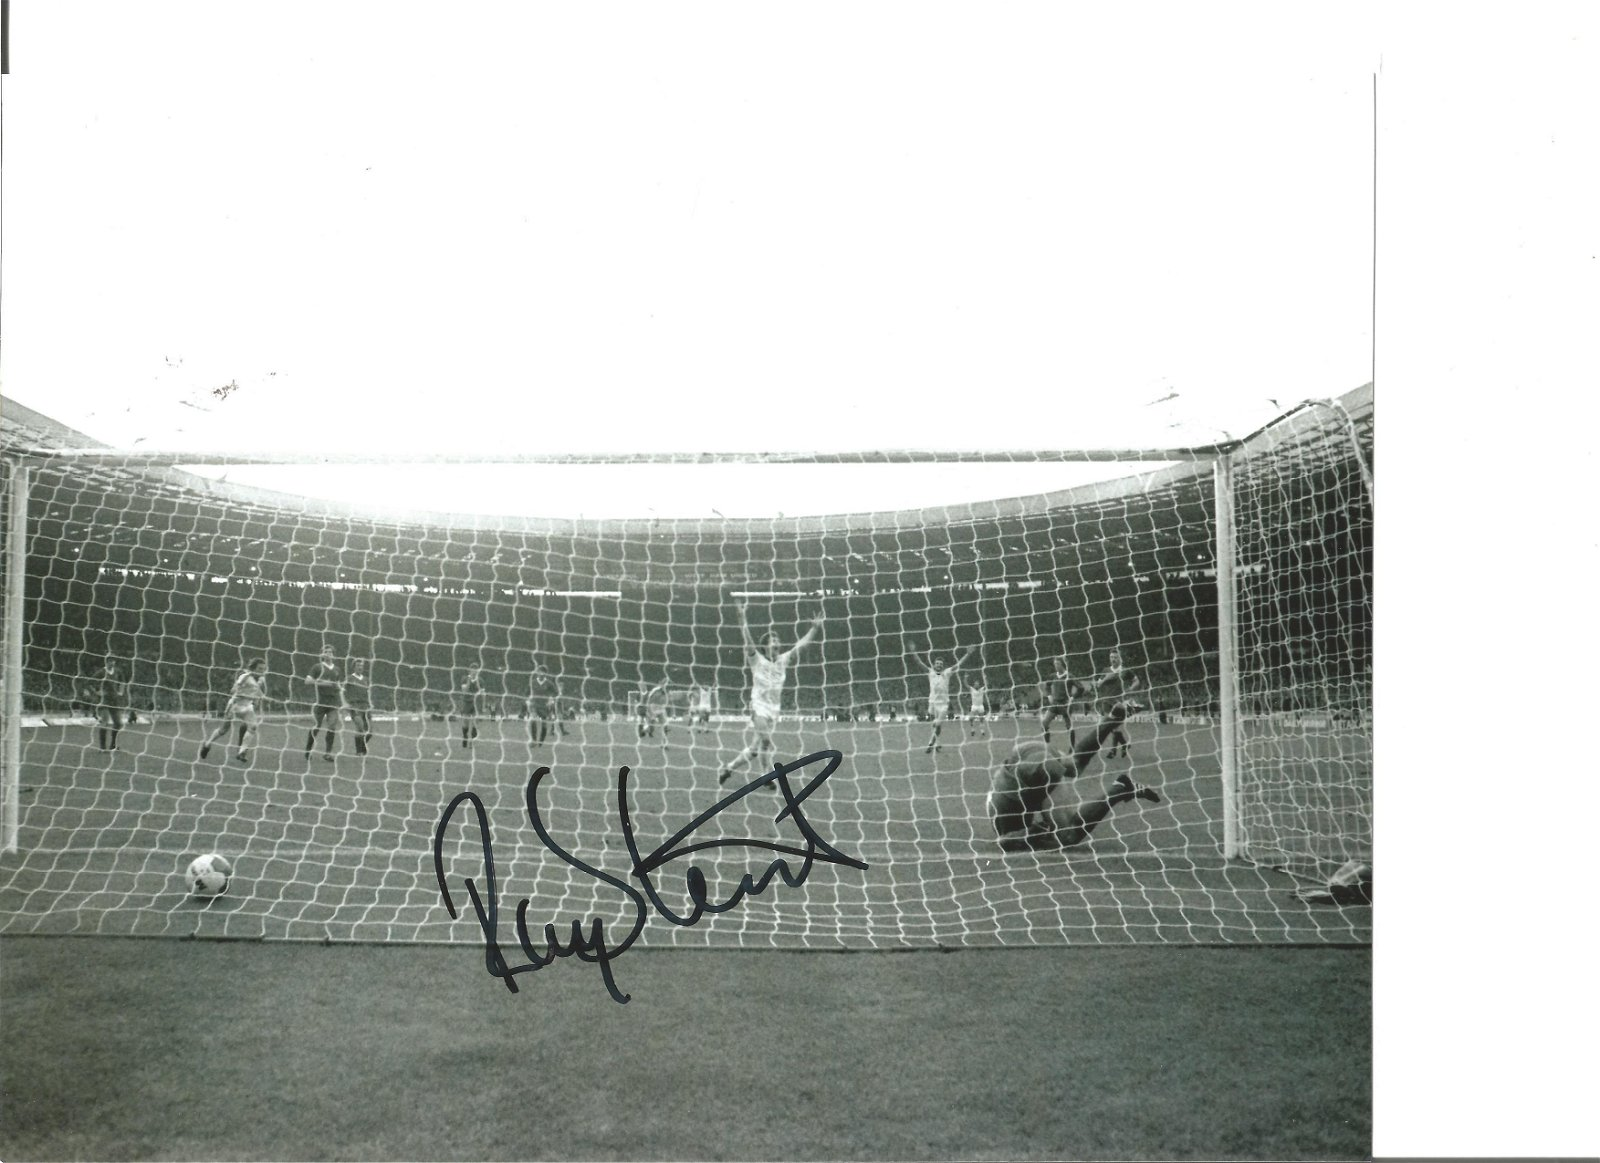 Football Ray Stewart 10x8 Signed B/W Photo Pictured